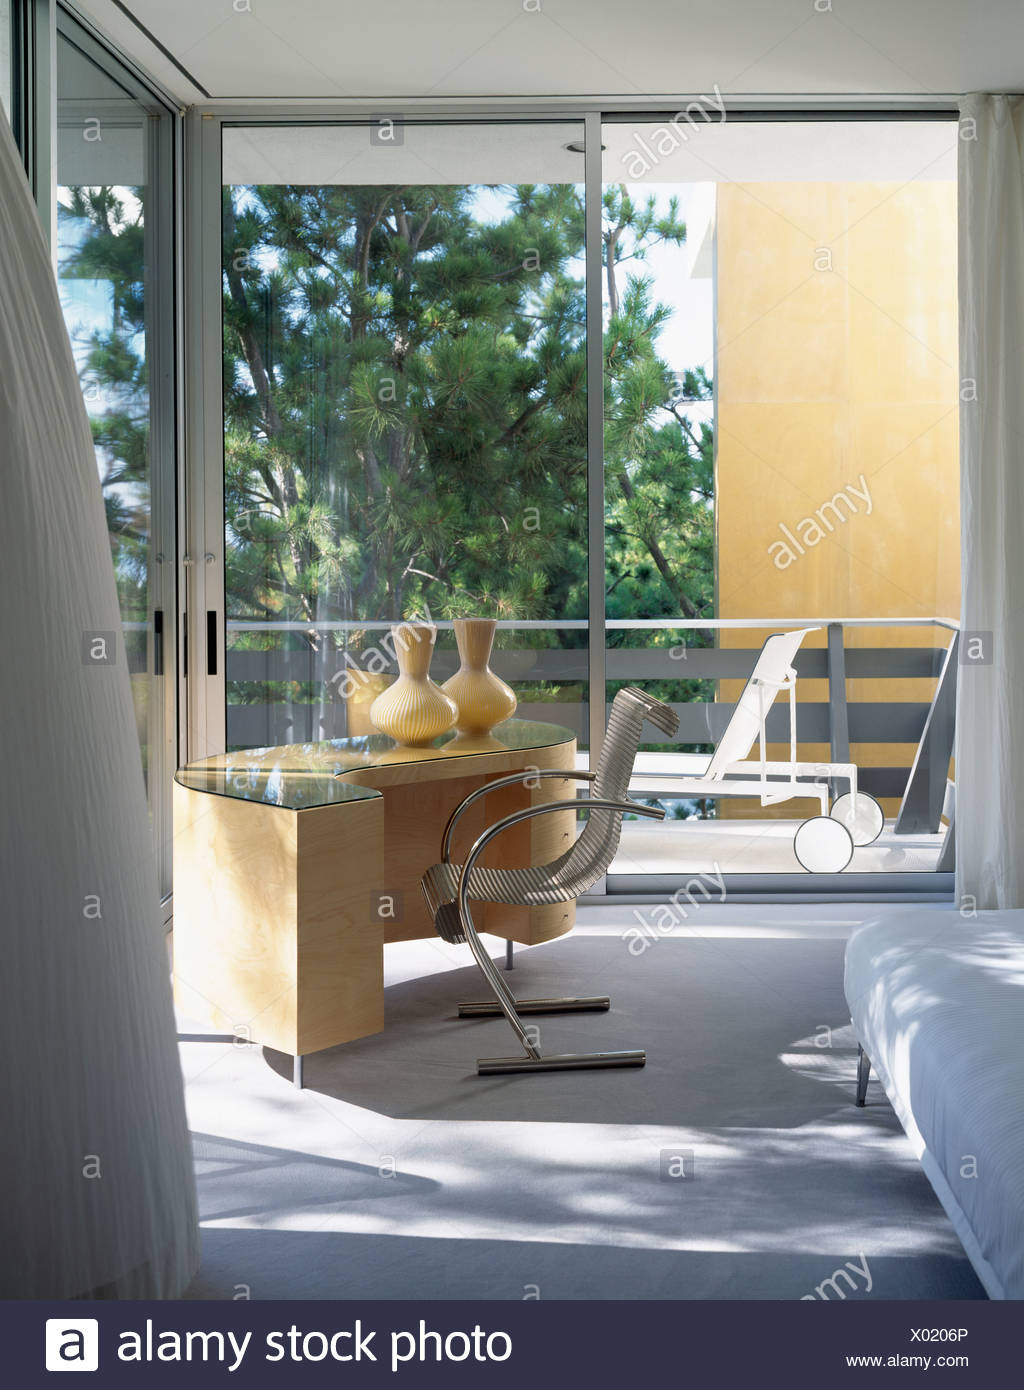 Mid Century Modern Desk And Chair In Modern Bedroom With Glass Doors Stock Photo Alamy